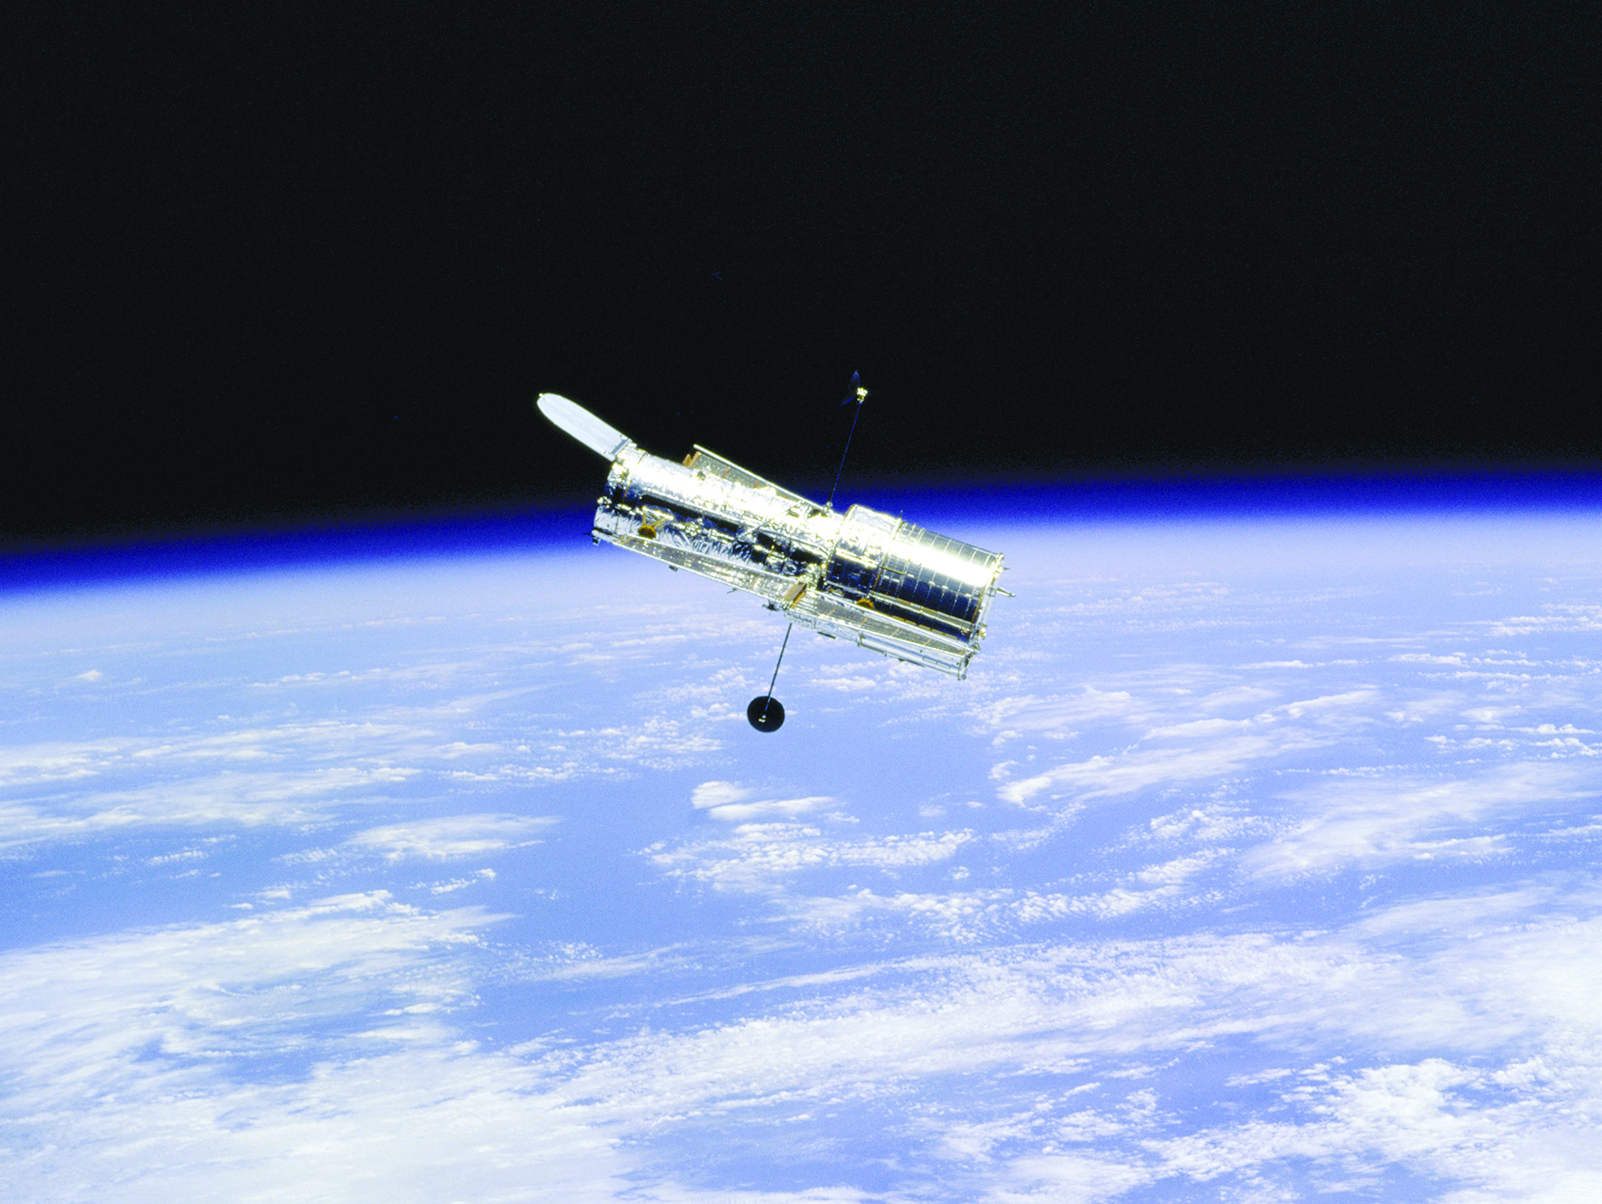 Hubble Spy Satellite (page 3) - Pics about space